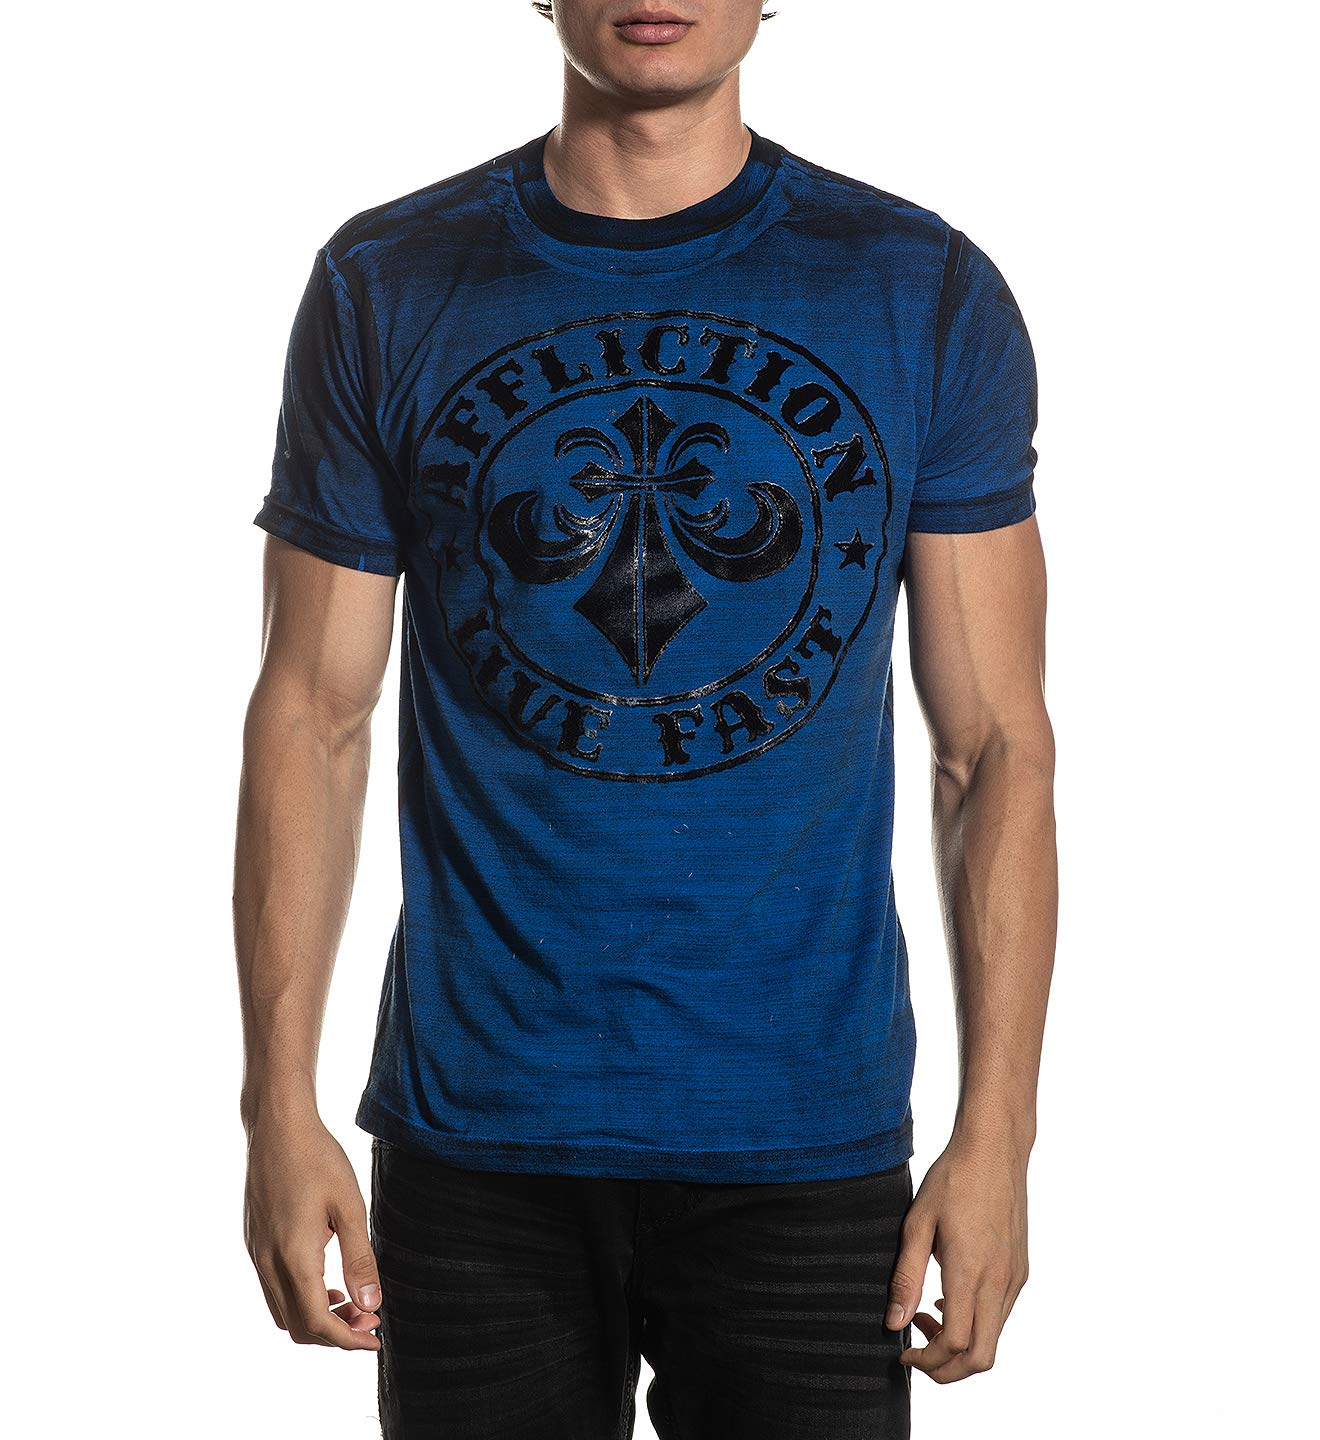 Affliction Men's Graphic T-Shirt, Divio Dare Variant, Short Sleeve Crew Neck Shirt